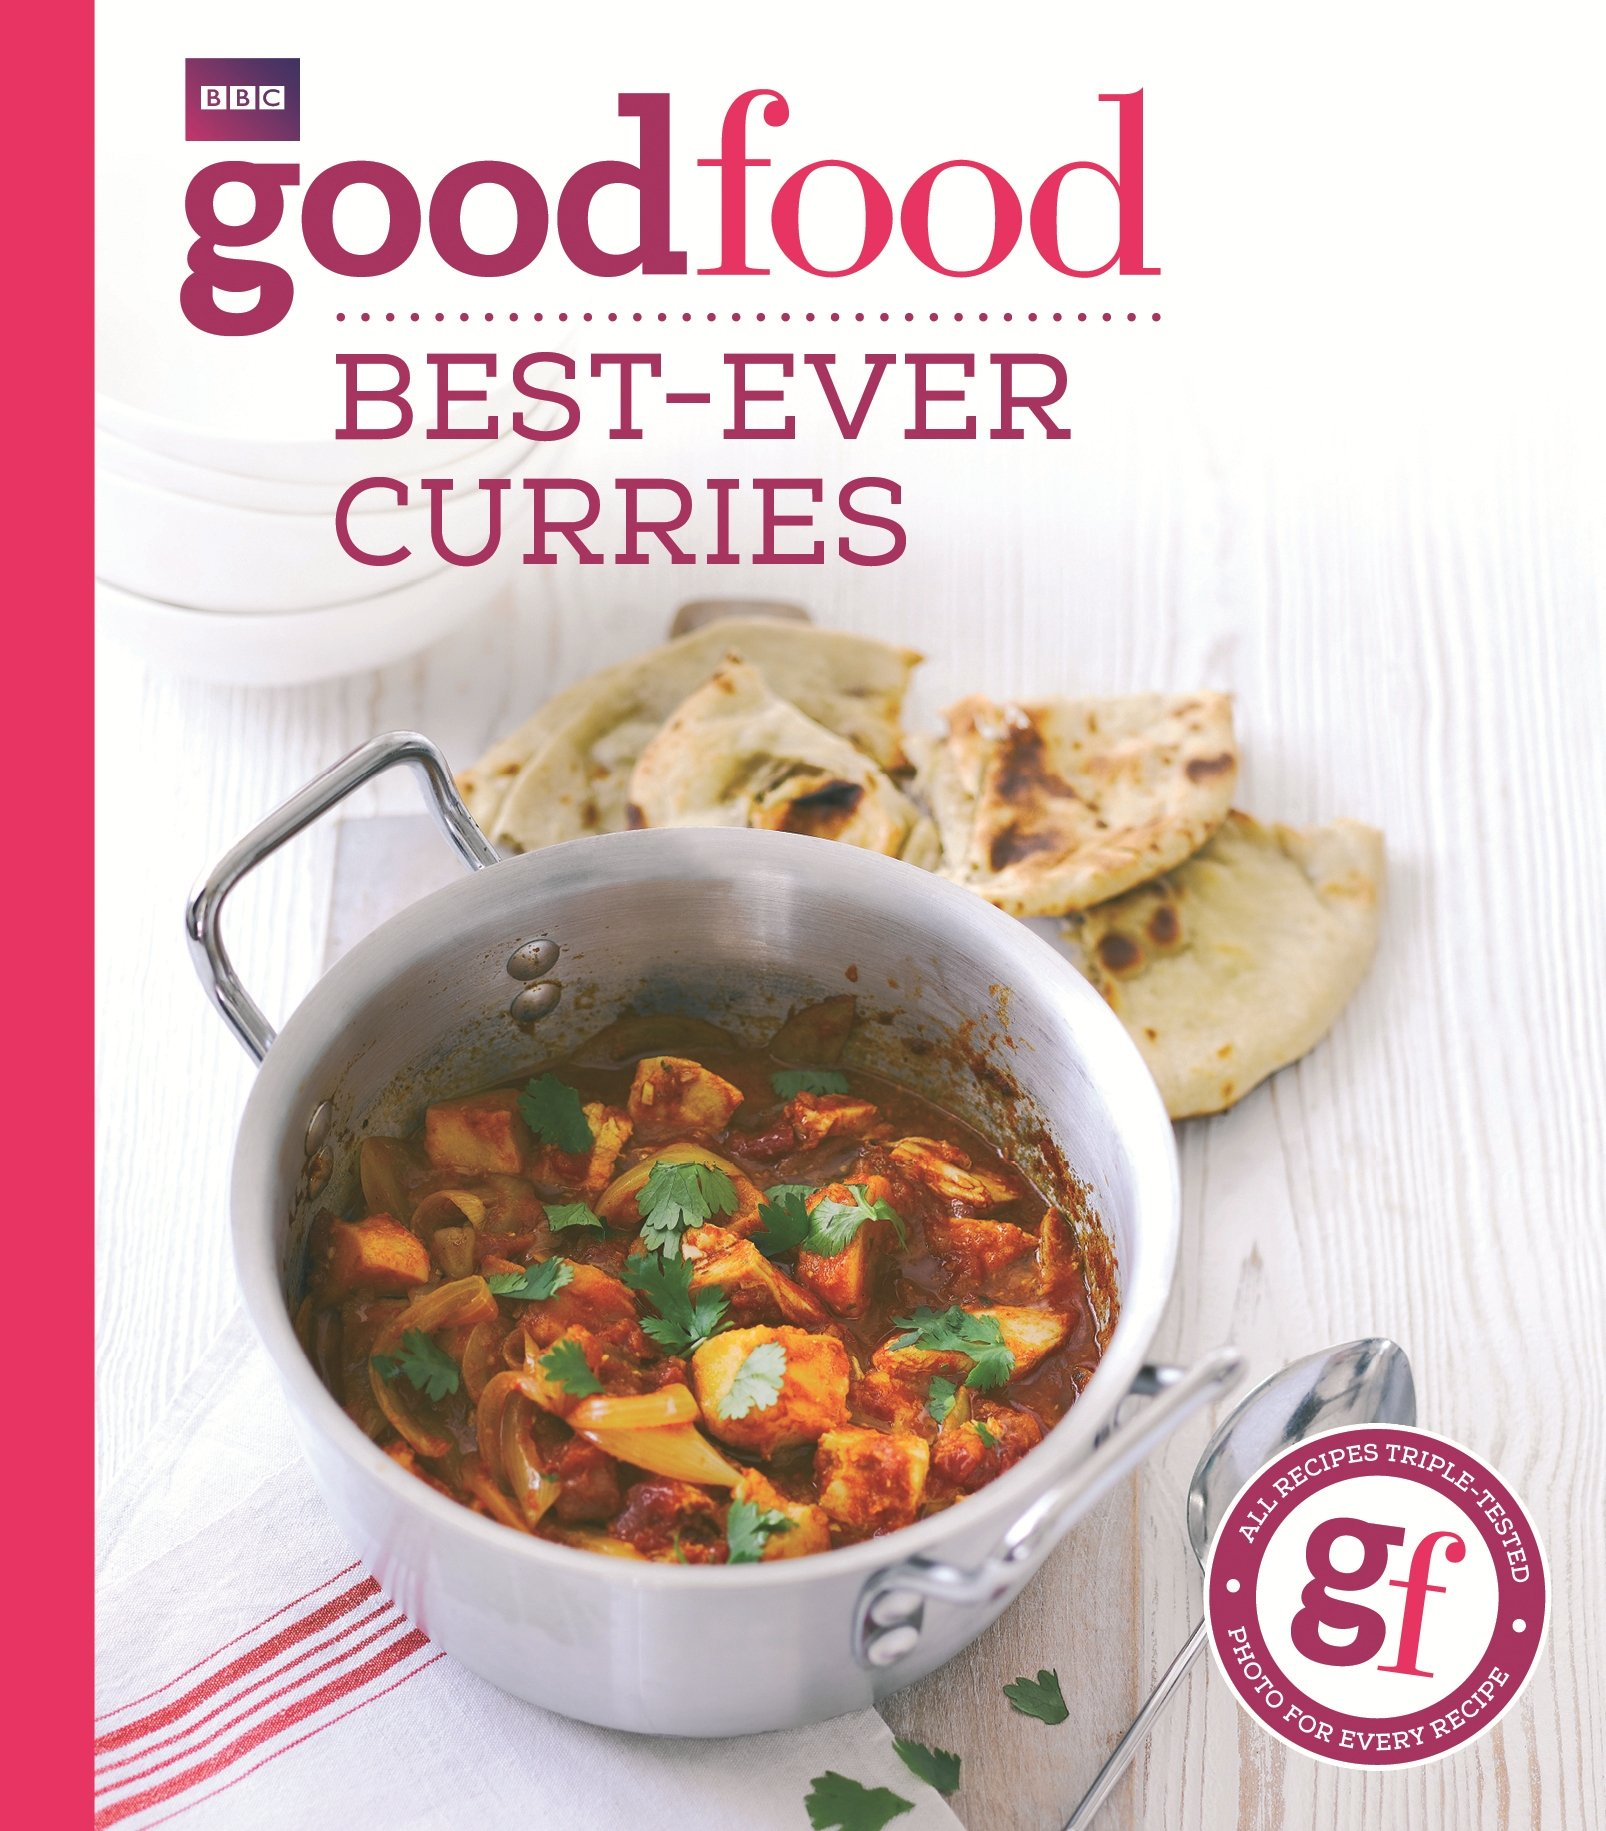 The good food cook book over 650 triple tested recipes for every good food best ever curries forumfinder Choice Image